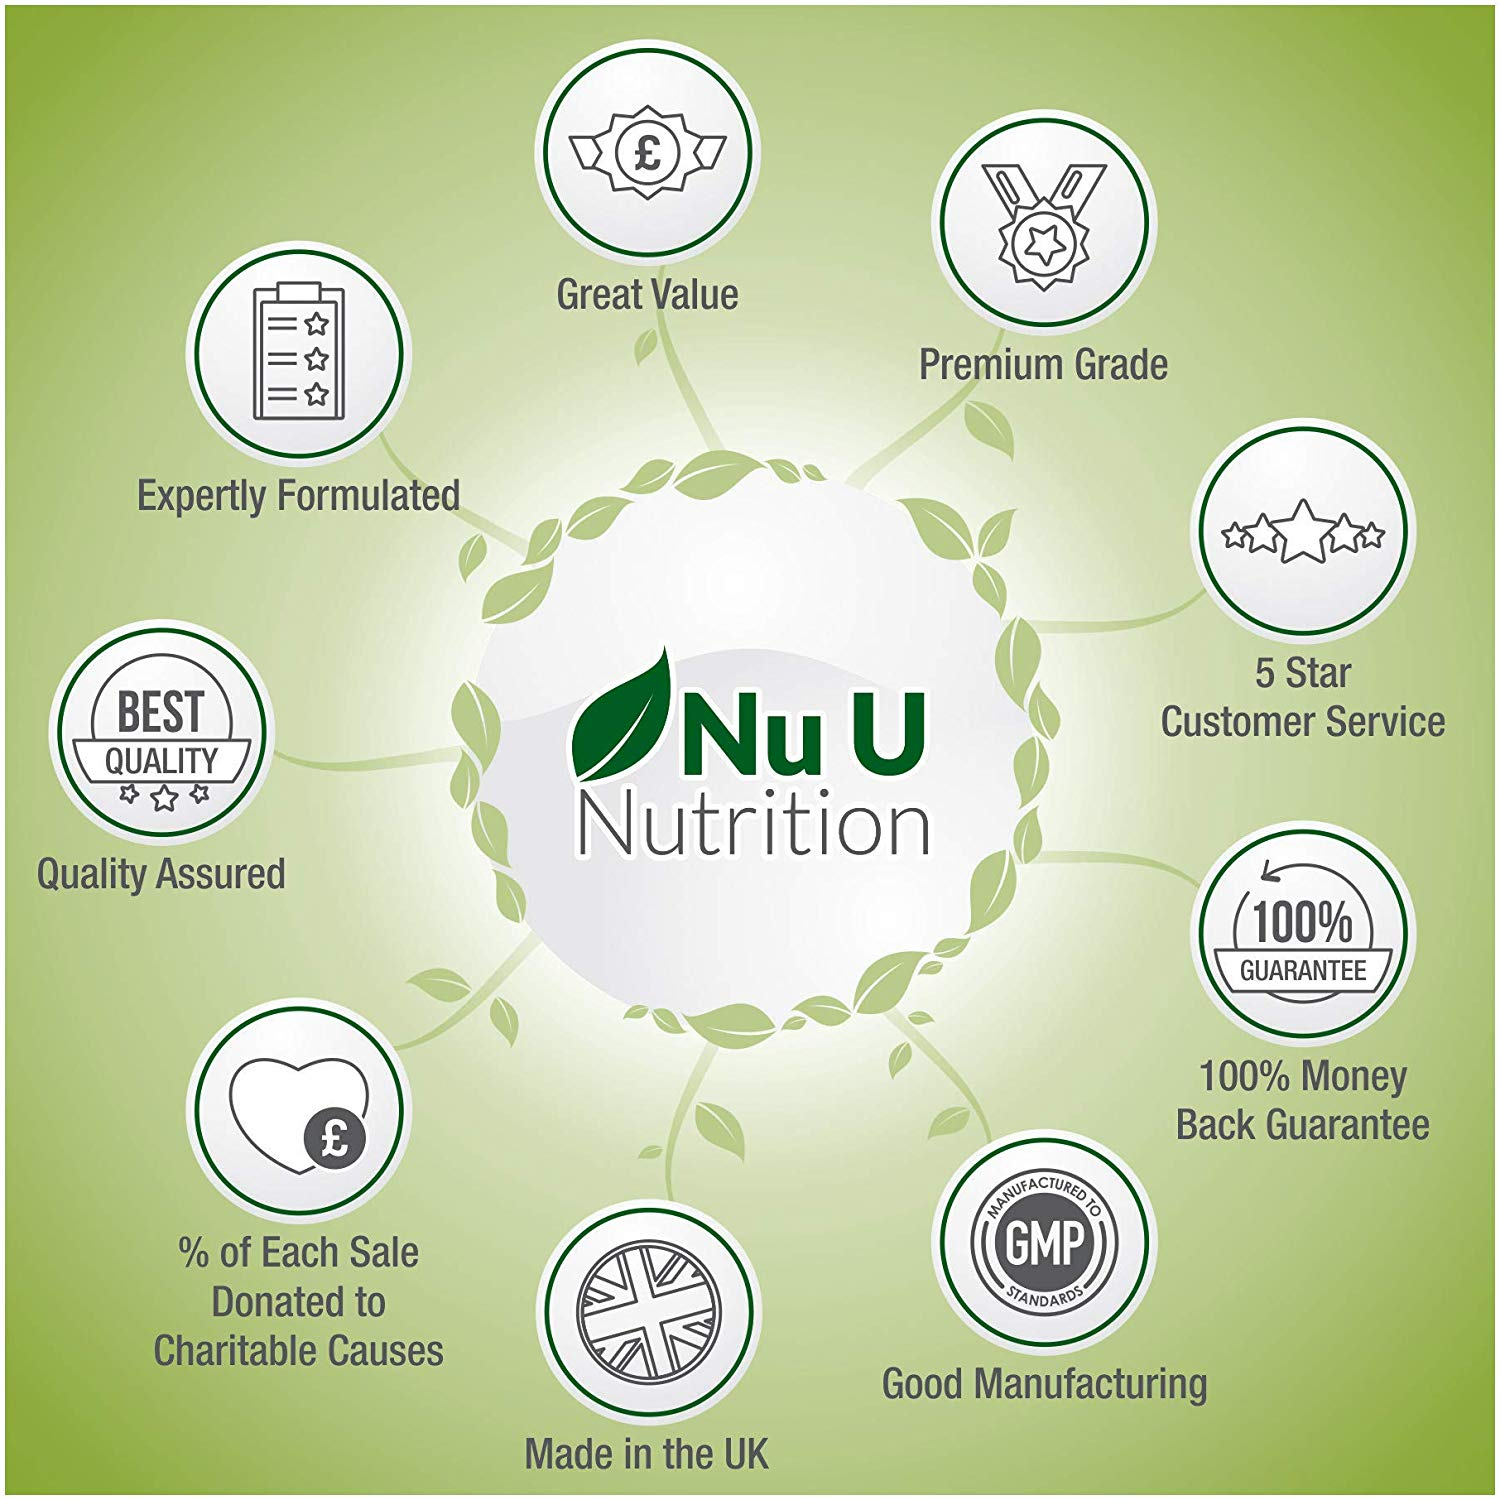 nu nutrition features